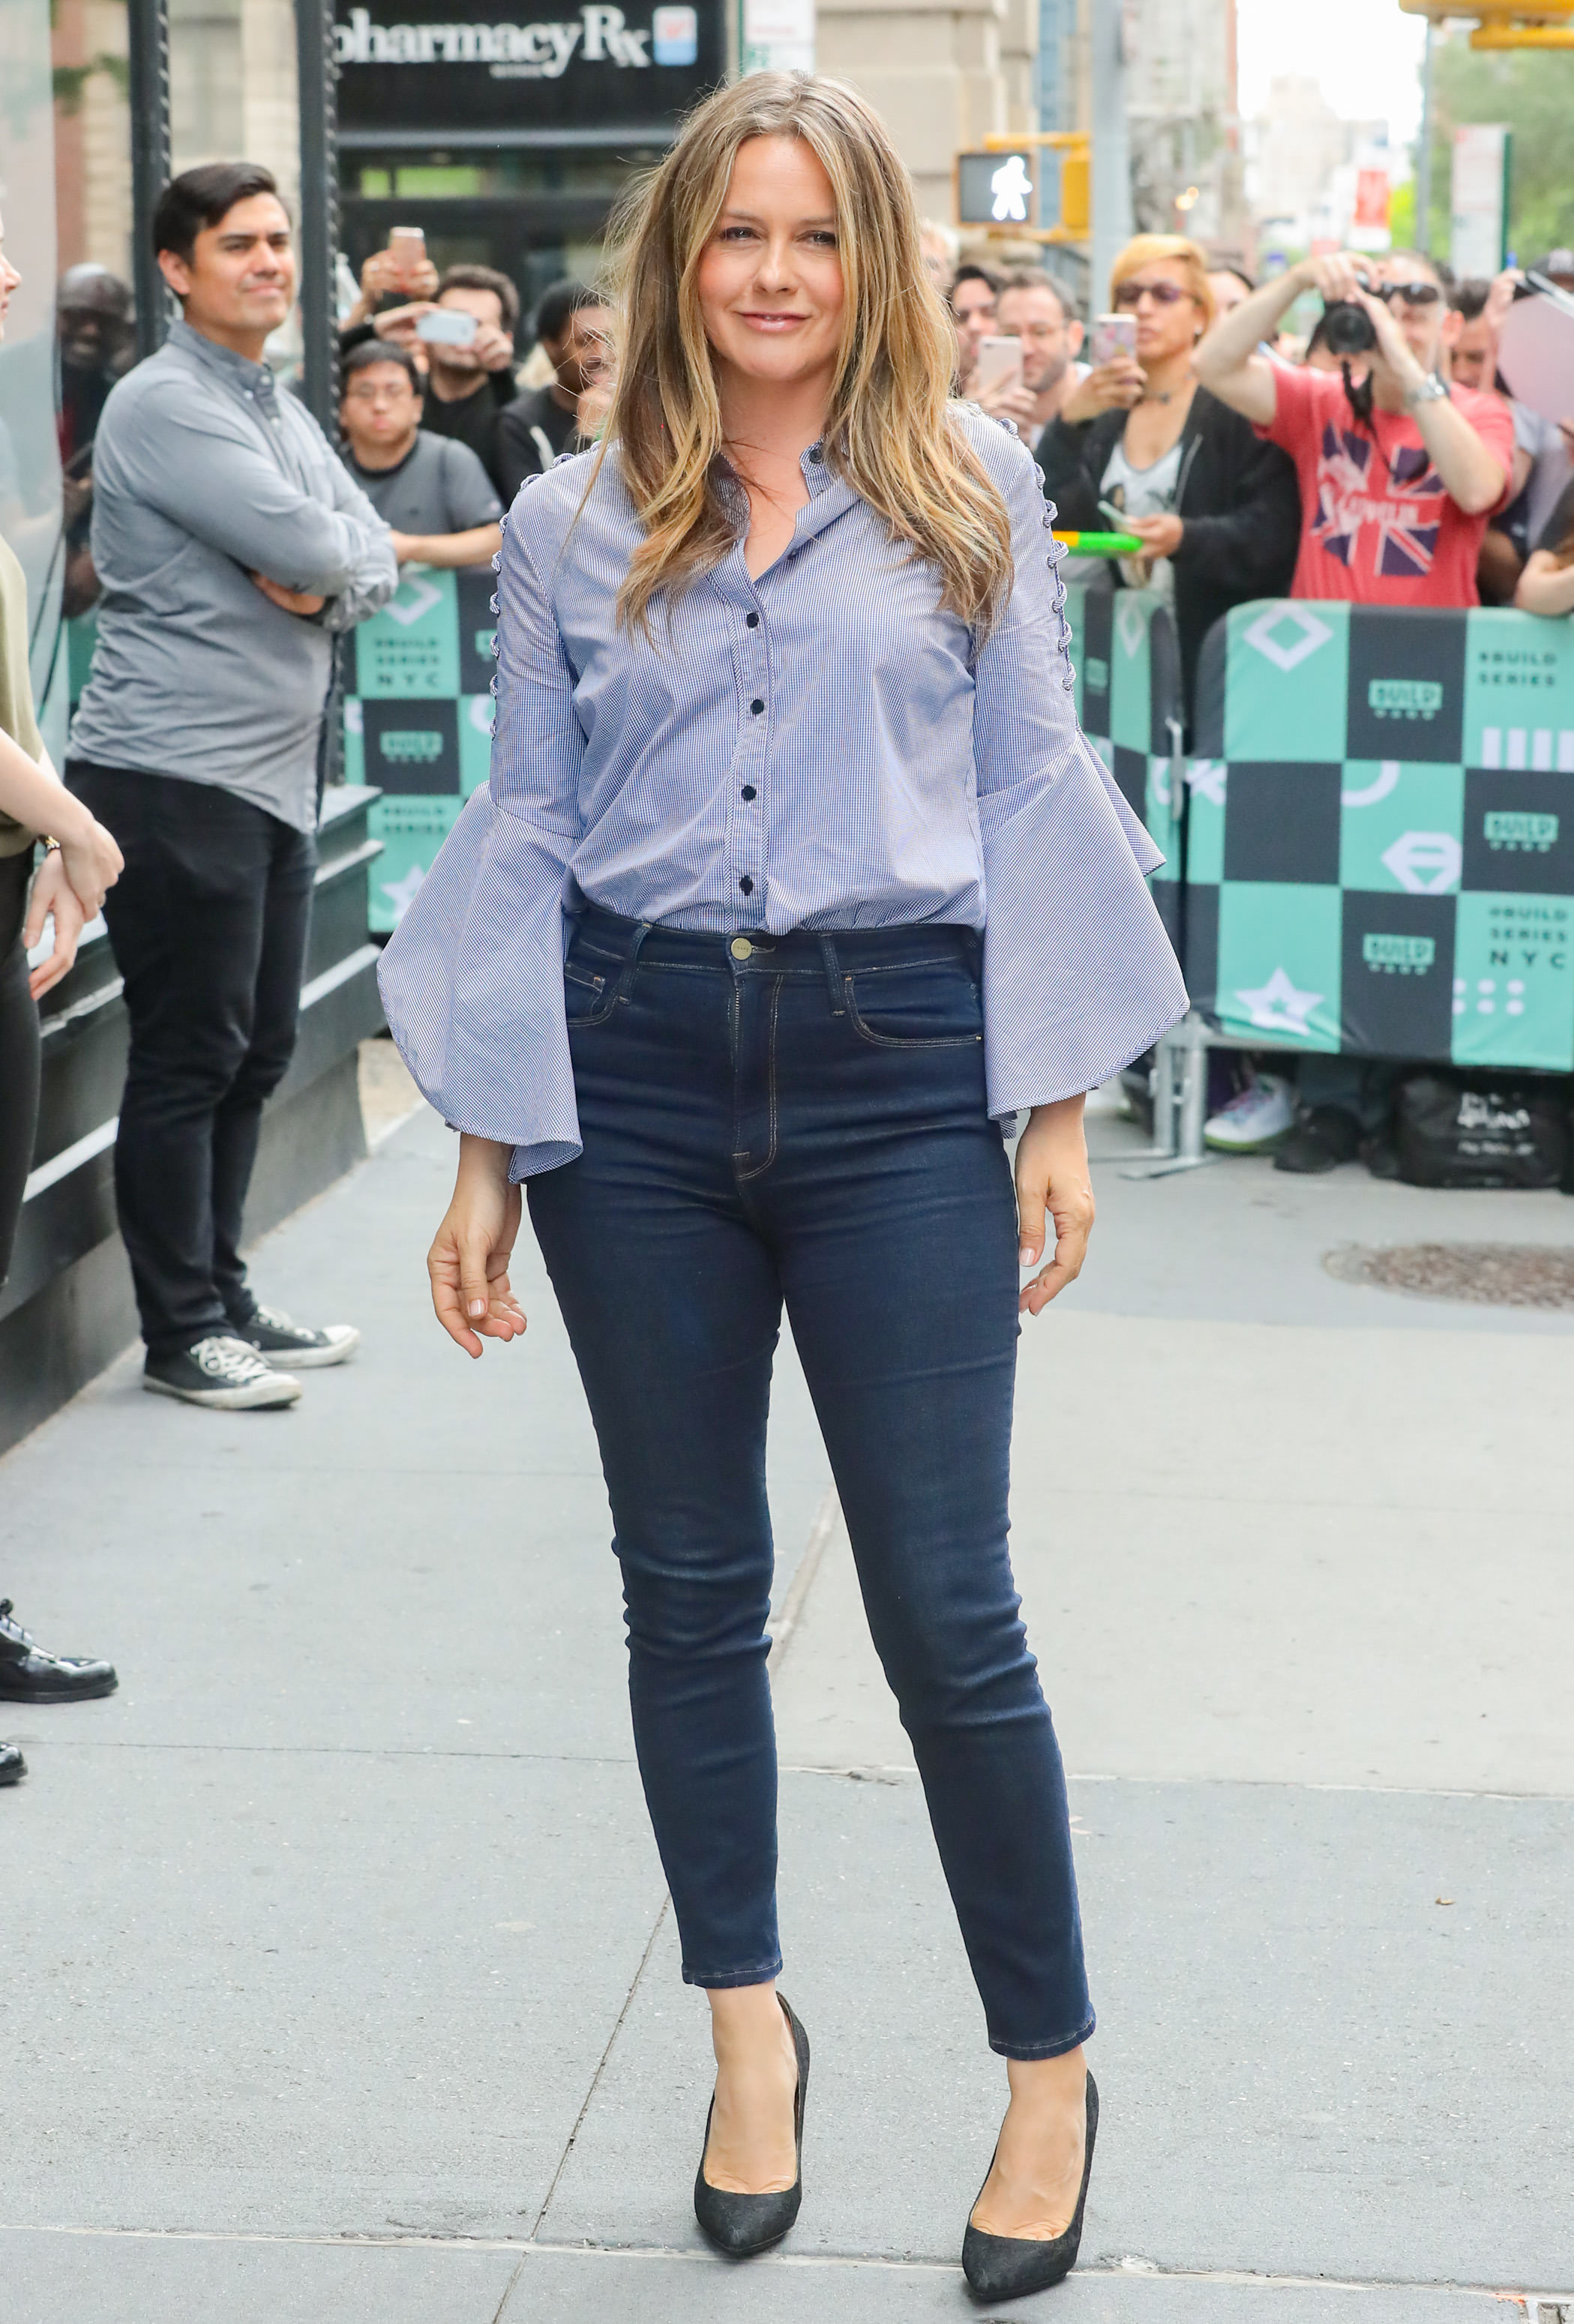 Alicia Silverstone is spotted at the AOL Build Speaker Series in New York CIty on June 5, 2018.